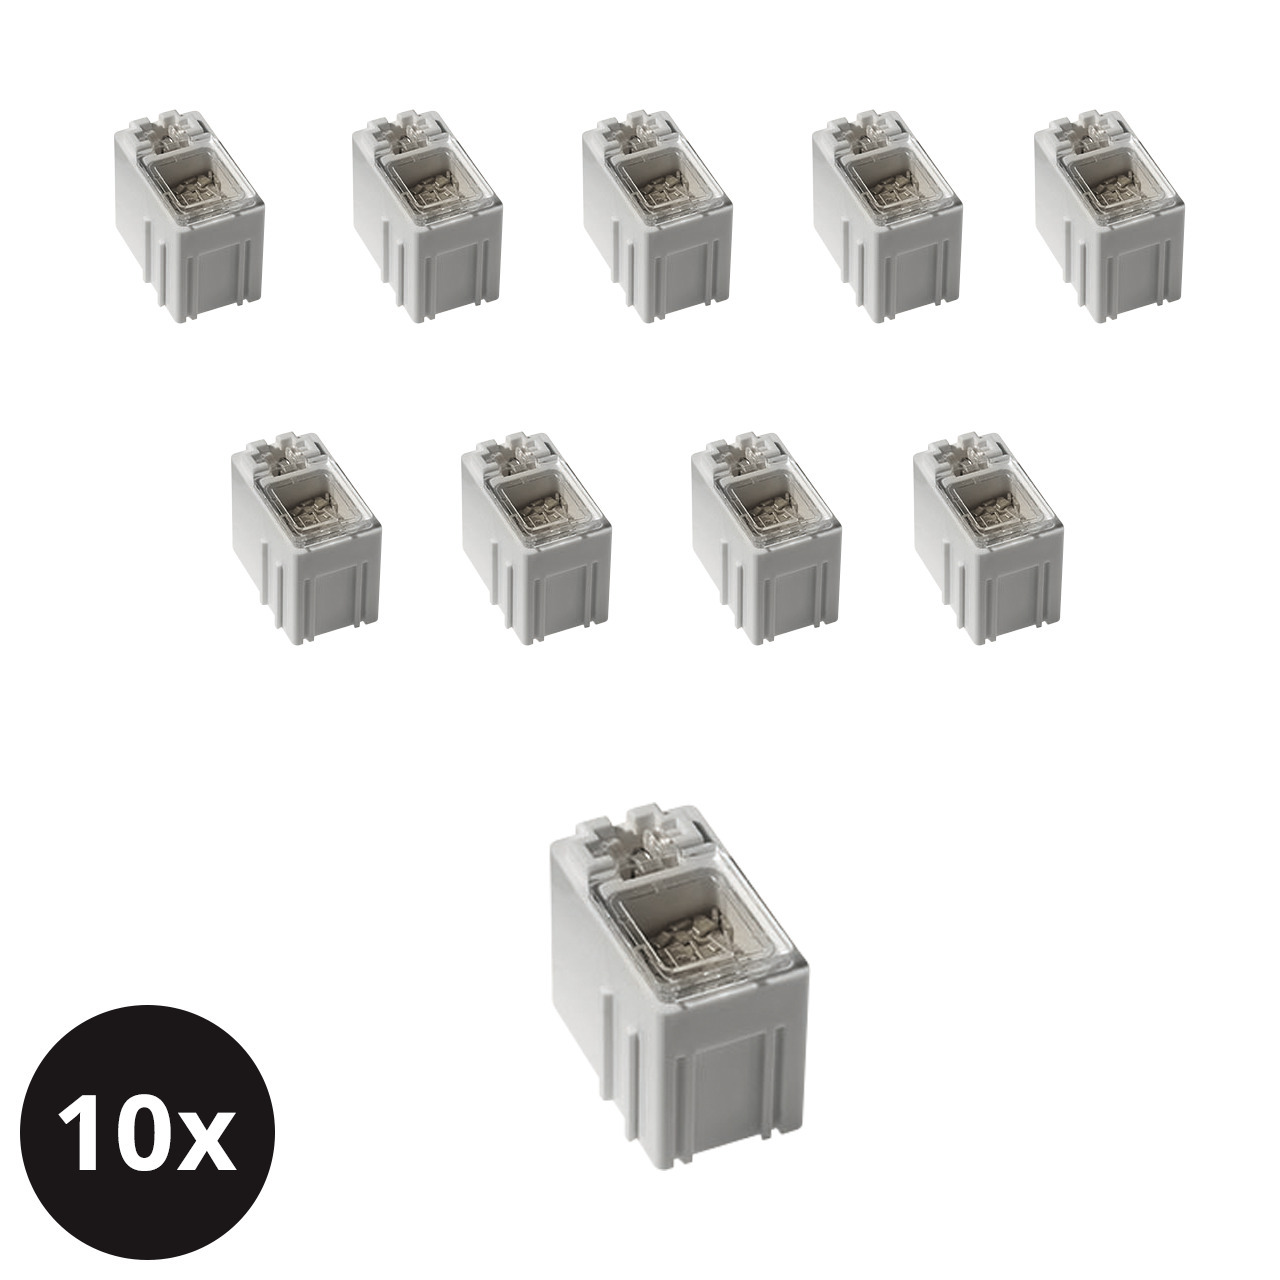 10er-Set ELV SMD-Sortierbox- Altweiss- 23 x 15-5 x 27 mm